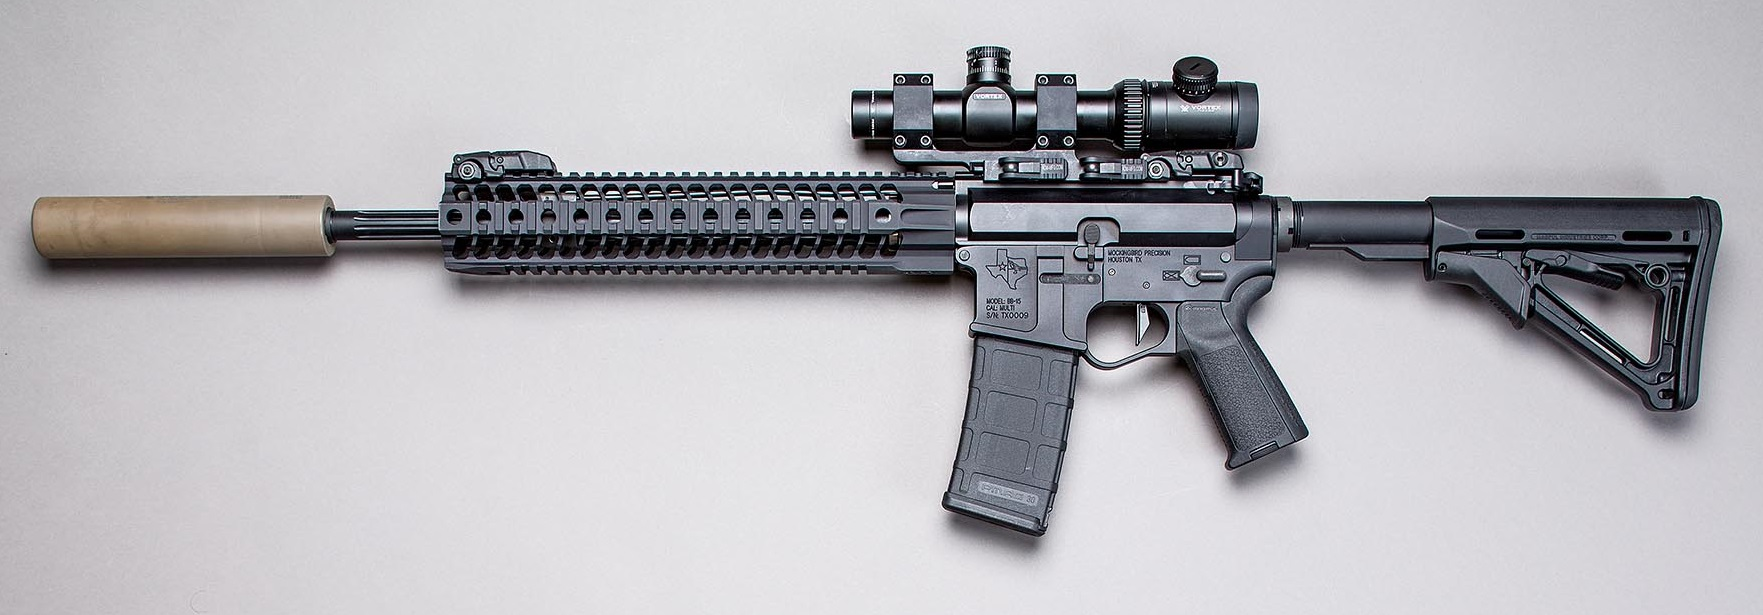 Mockingbird Precision BB-15 5.56 Carbine